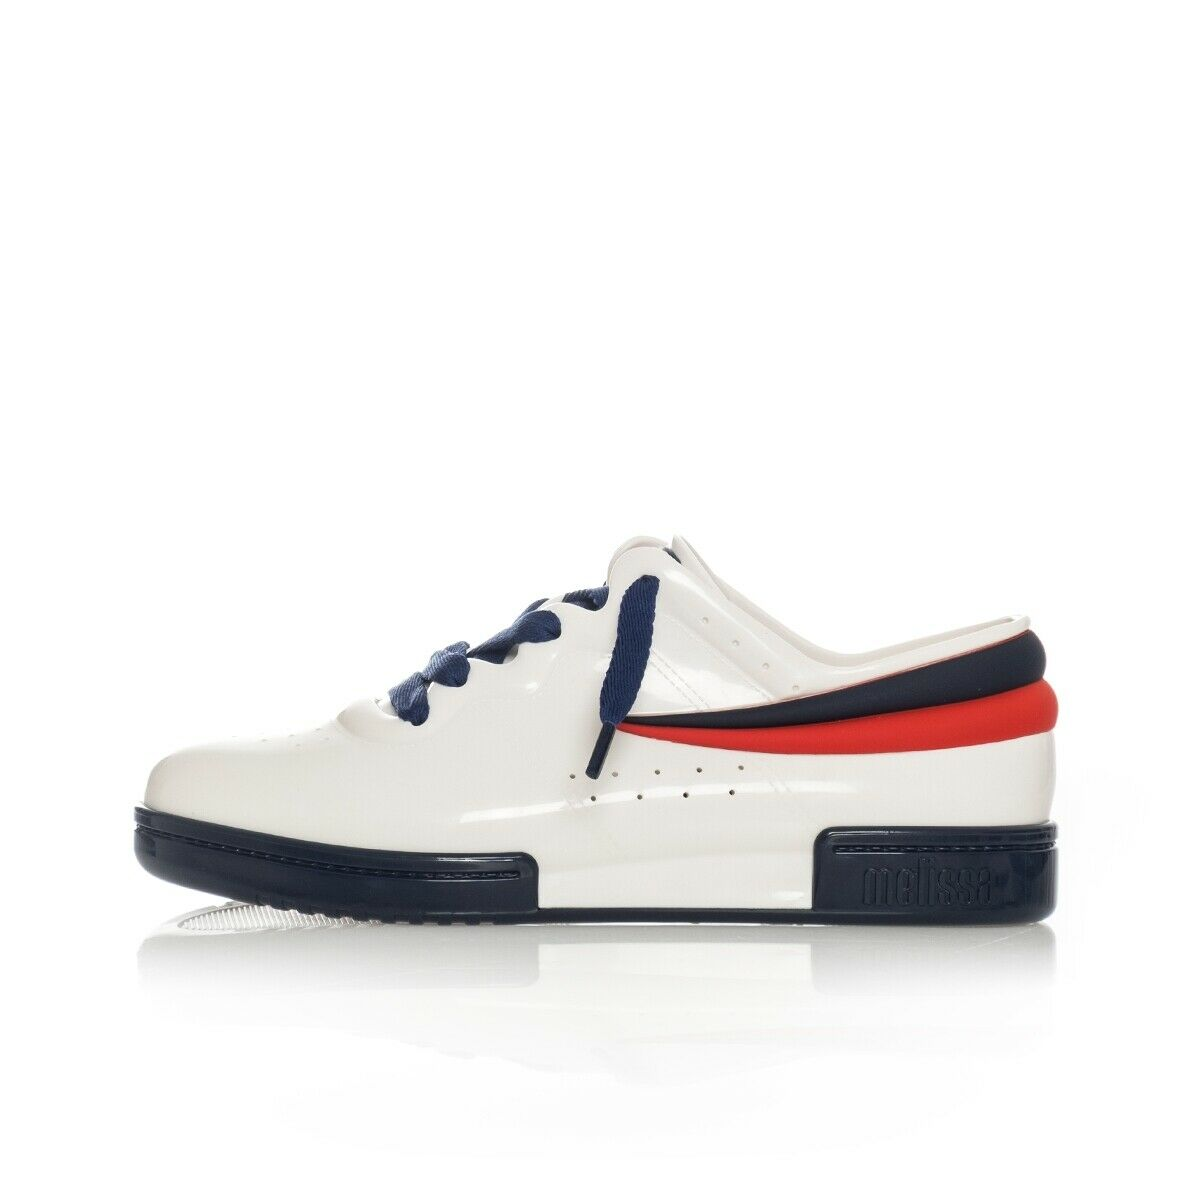 Sneakers woman melissa sneaker + row Ad 32477.51991 shoes women casual snk